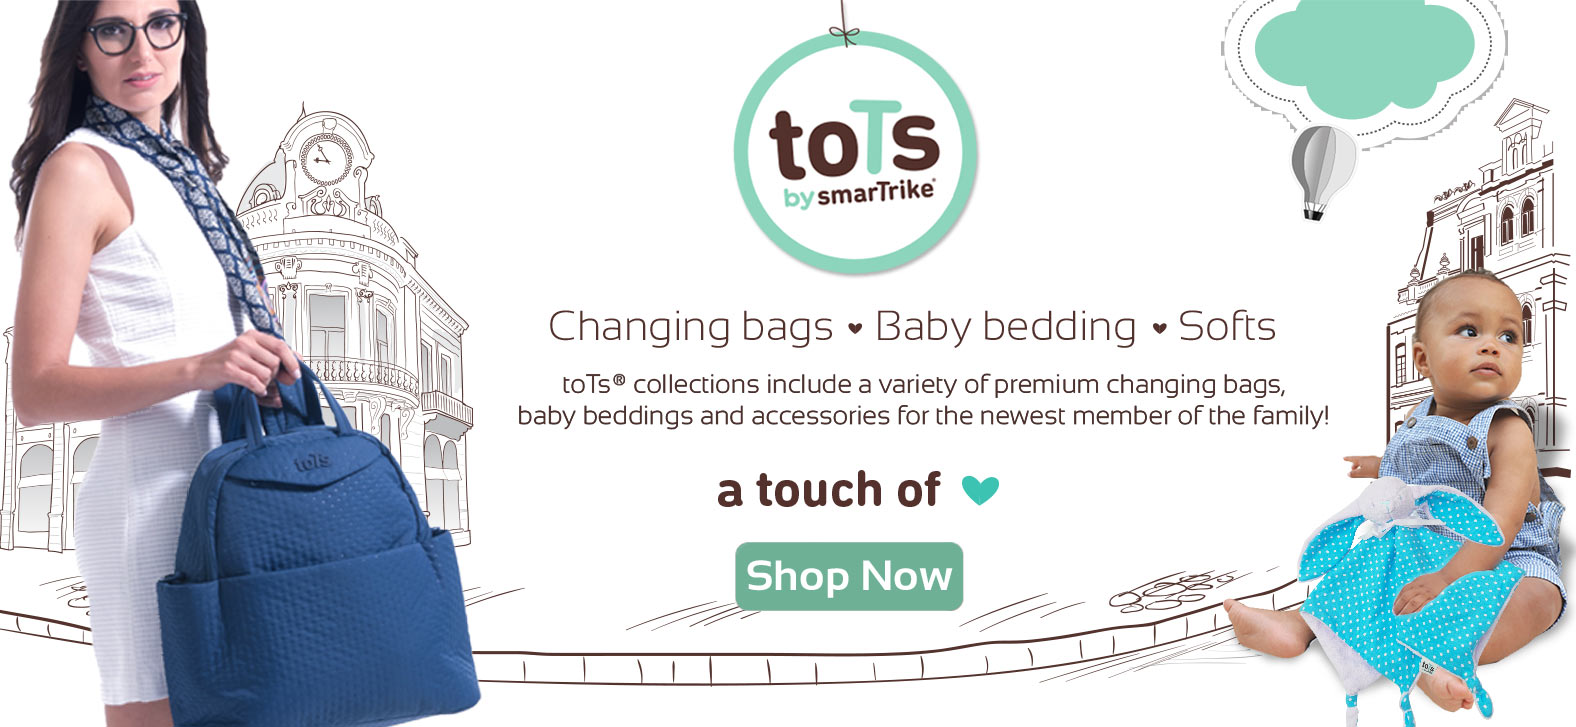 Shop All Tots by SmarTrike At Smyths Toys Superstores!